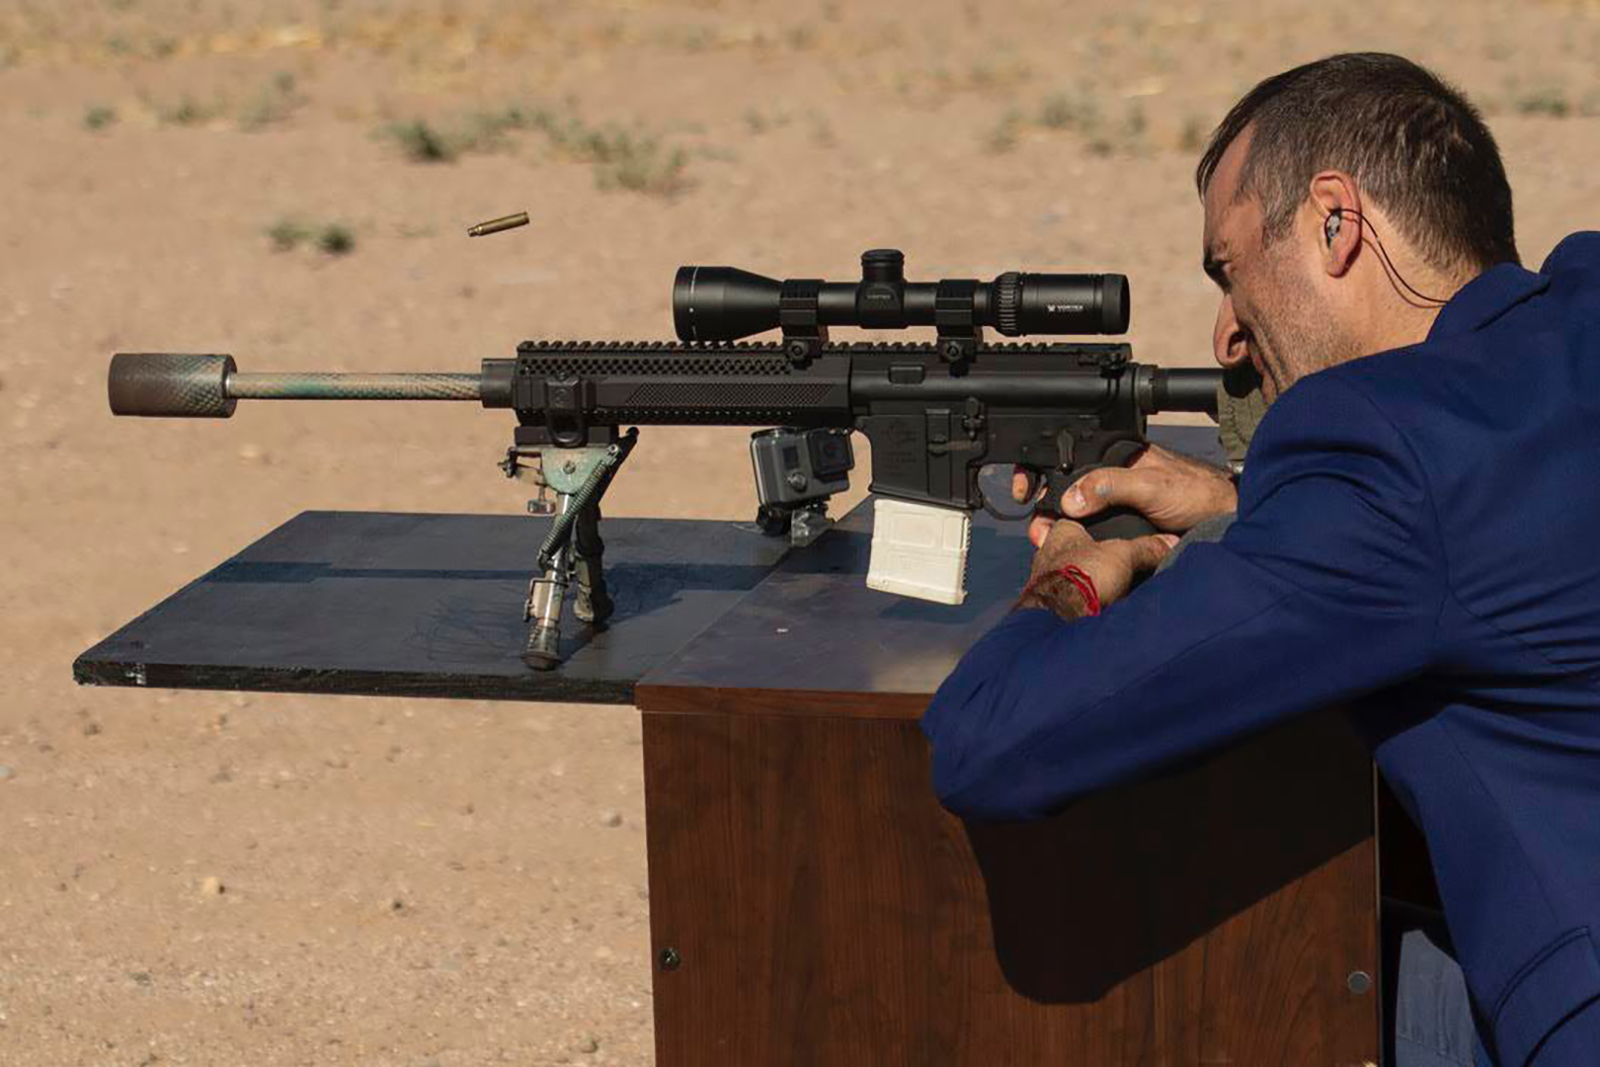 man fires a rifle from a desk in the desert